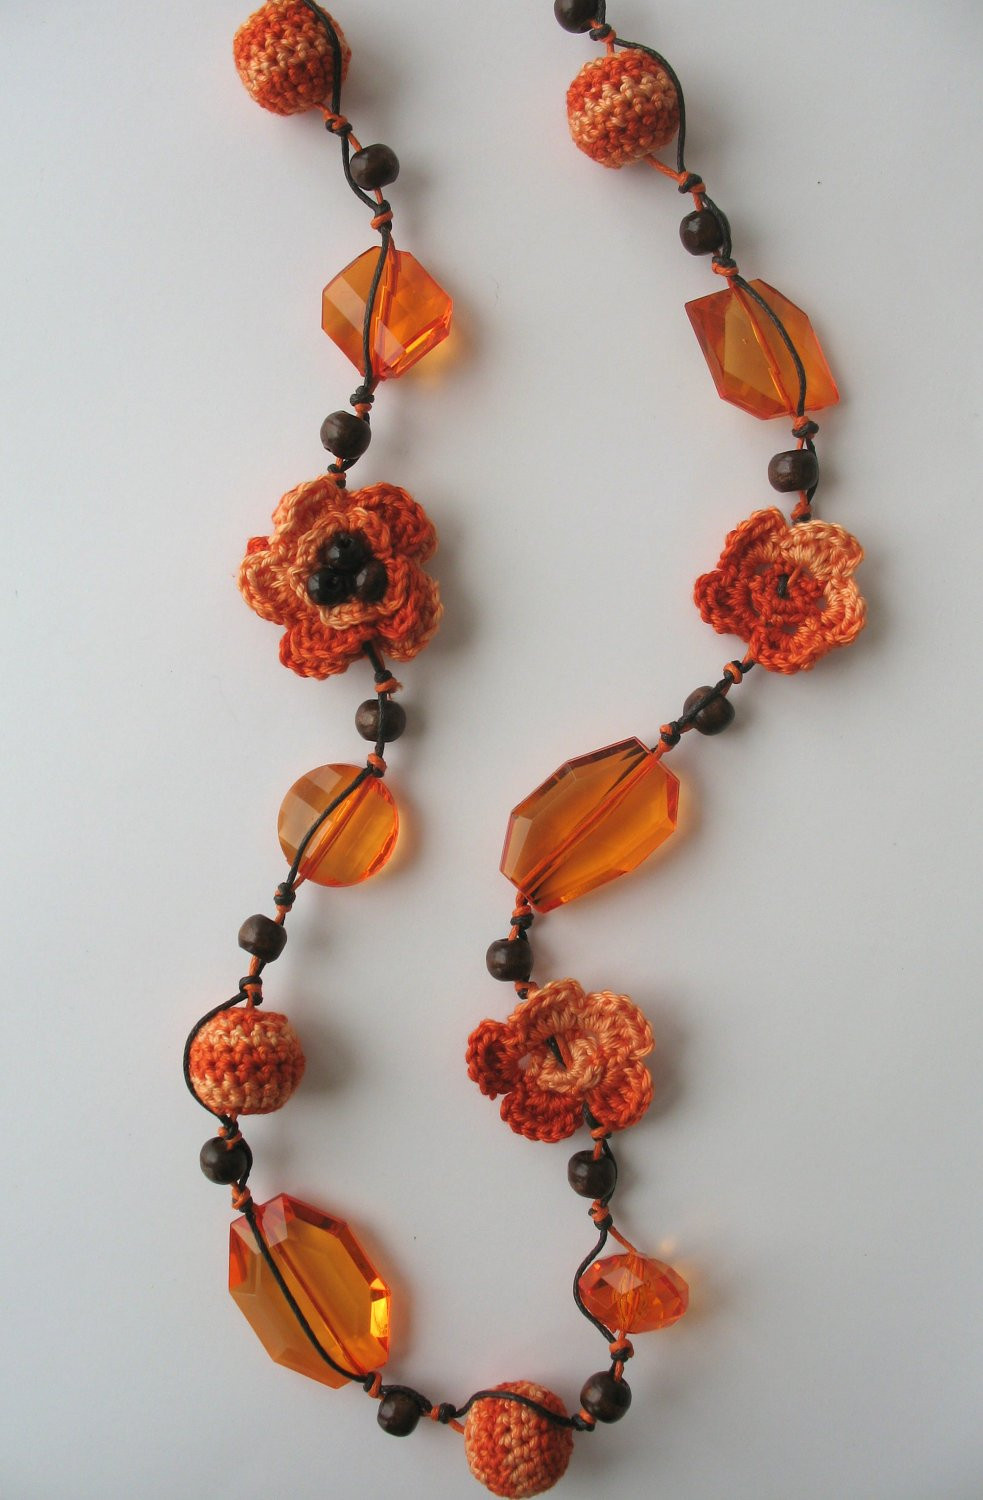 Crochet Beaded Necklace Awesome orange Crocheted Necklace with Beads Of Contemporary 43 Images Crochet Beaded Necklace